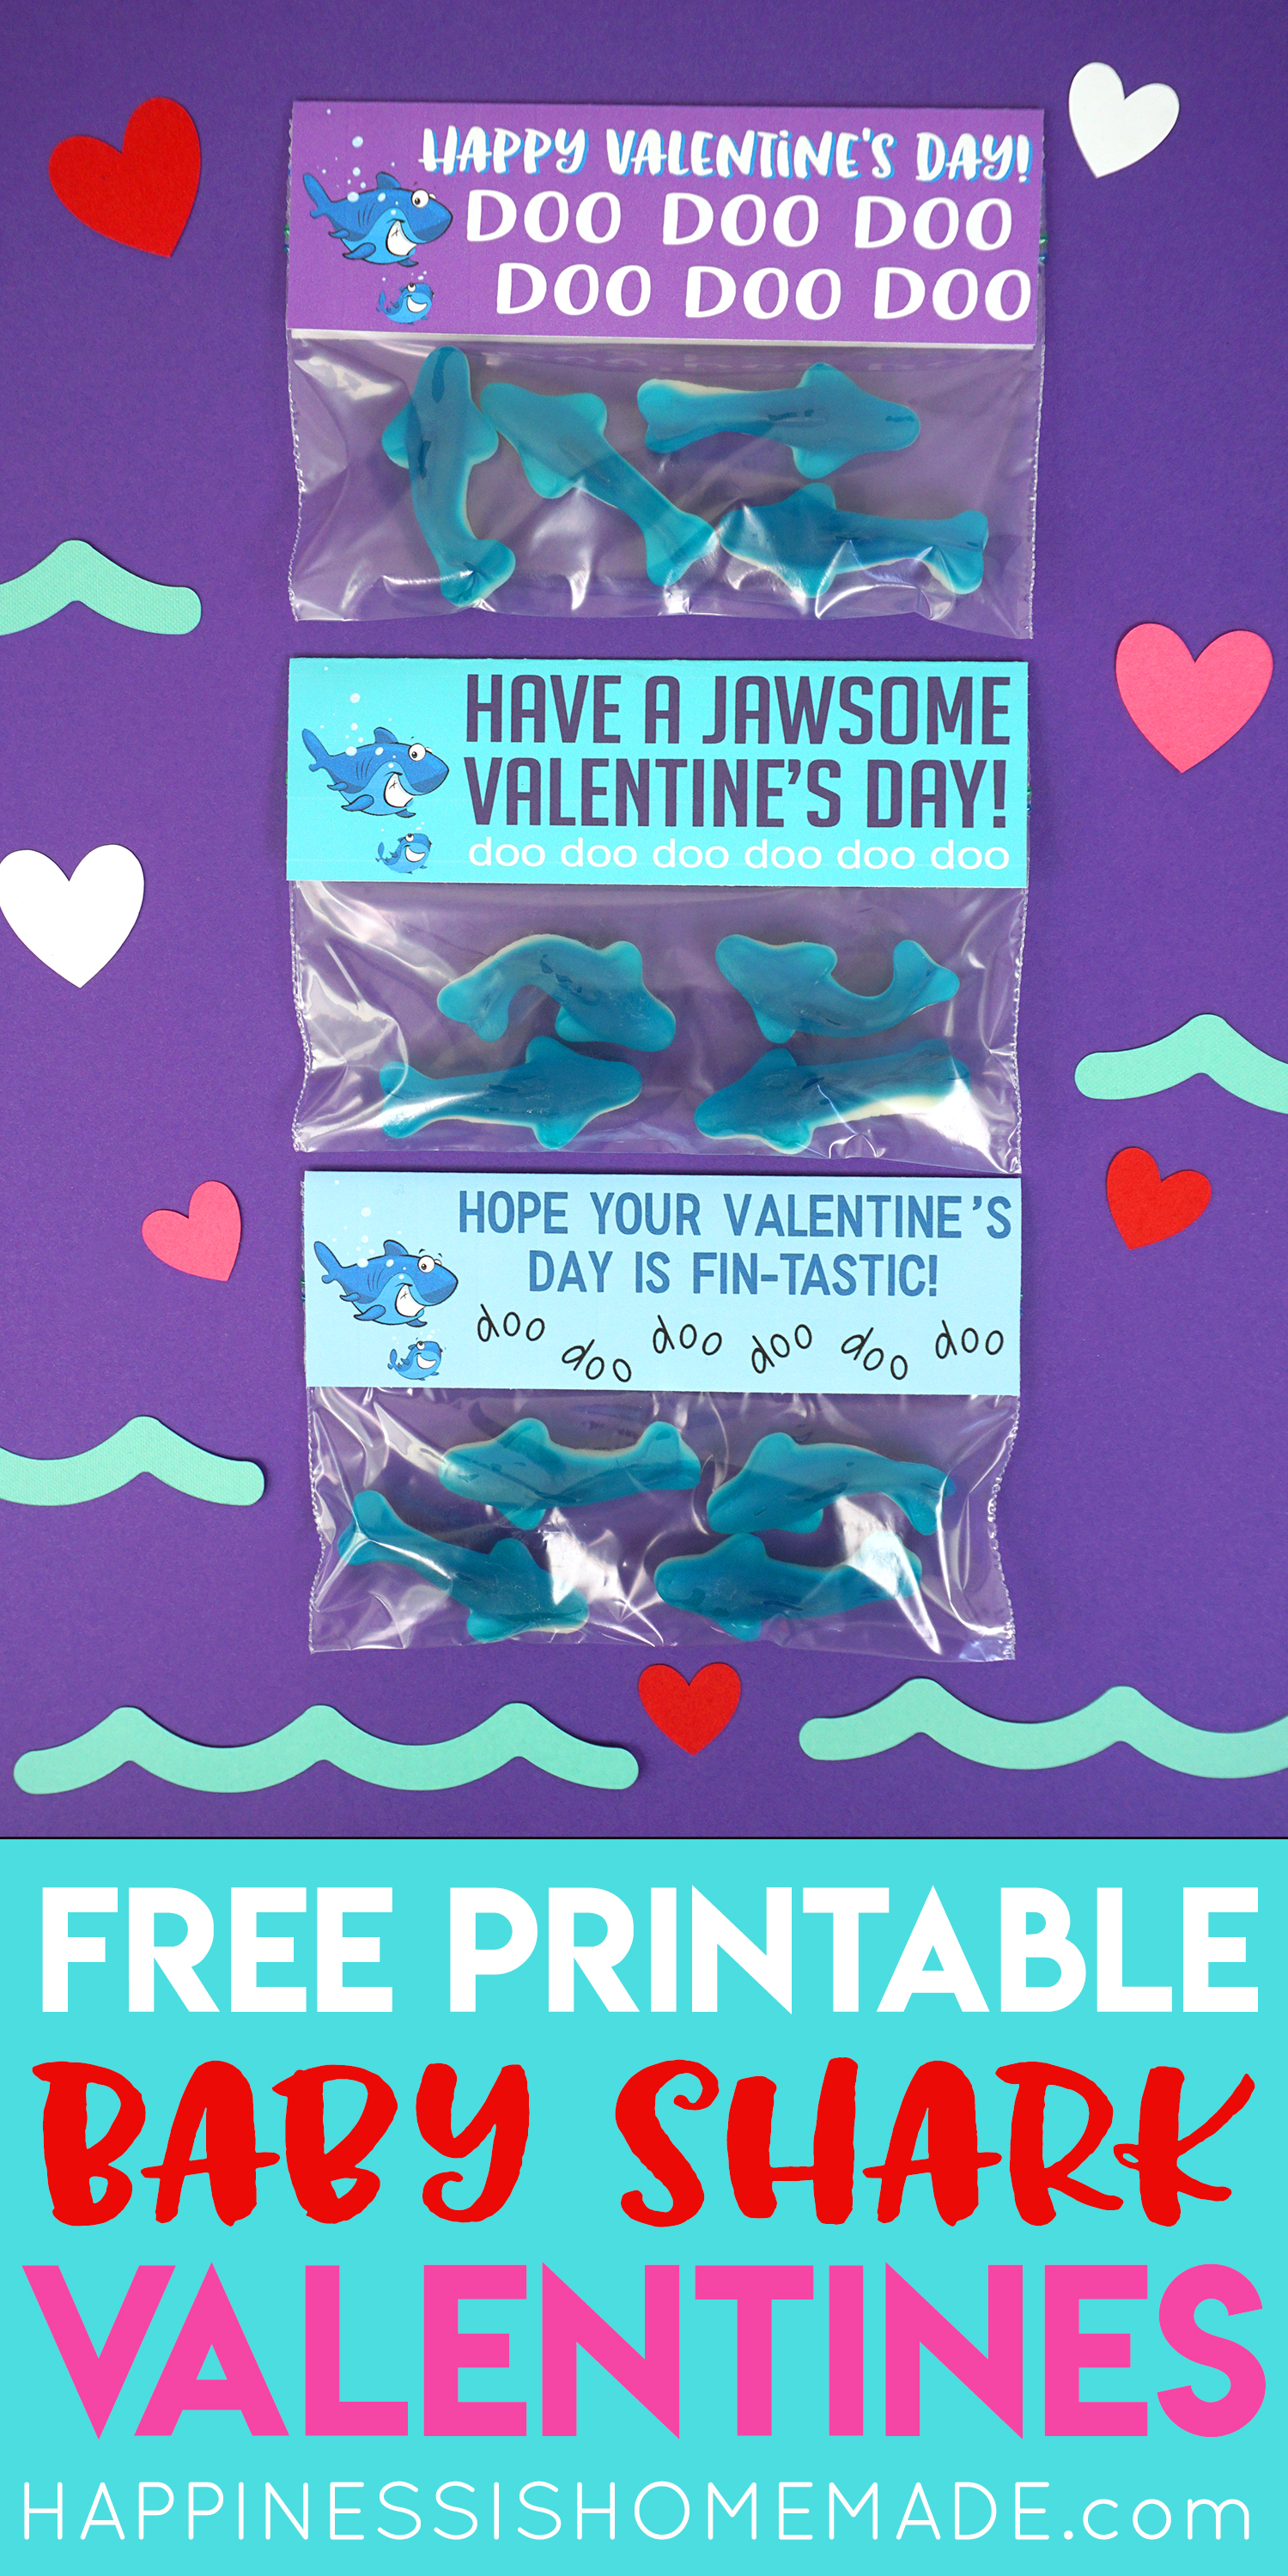 Baby Shark Valentines Cards Happiness Is Homemade